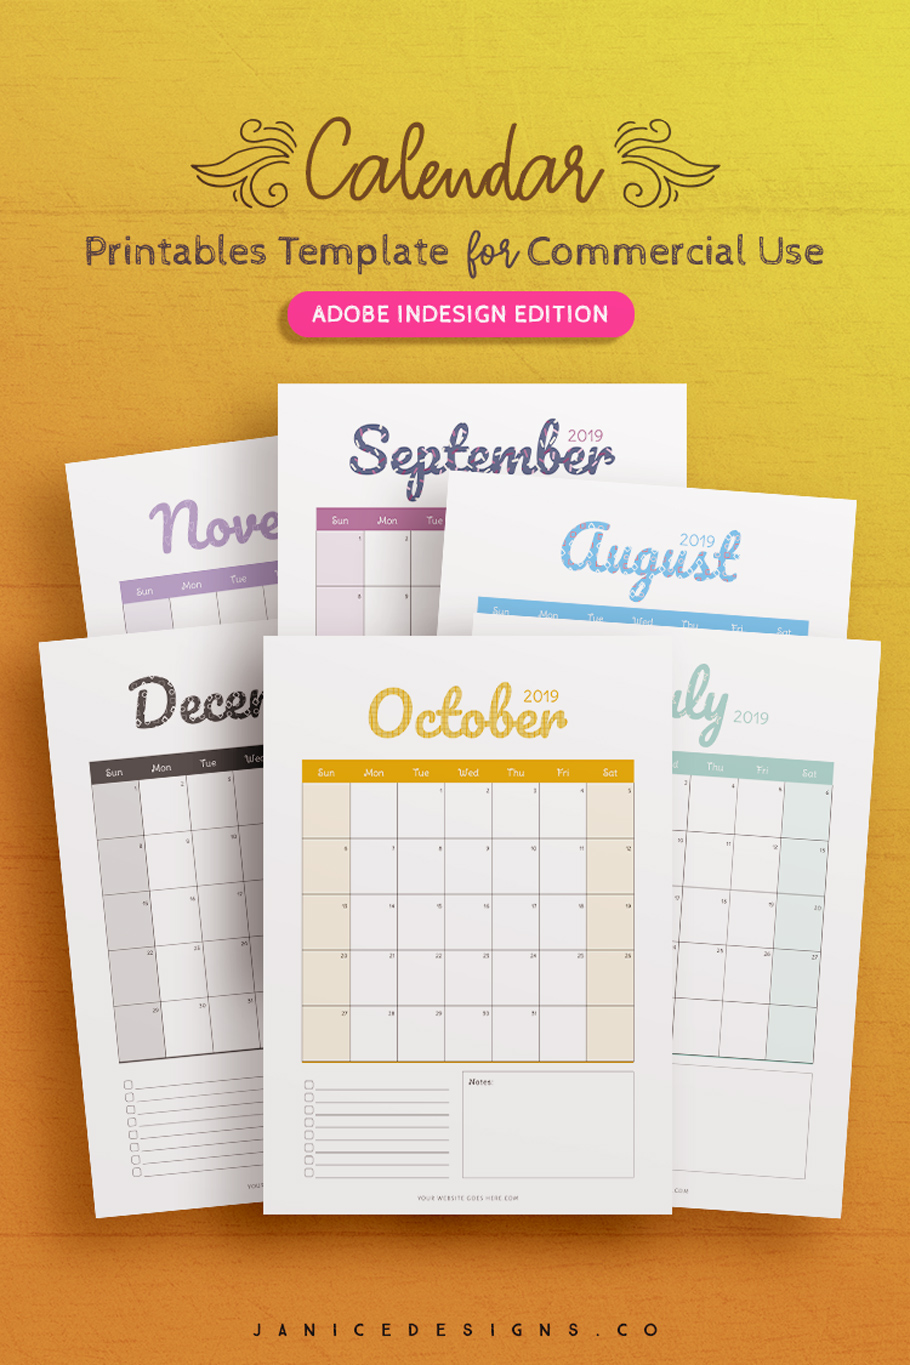 7-in-1 Bundle InDesign Templates for Commercial Use example image 3